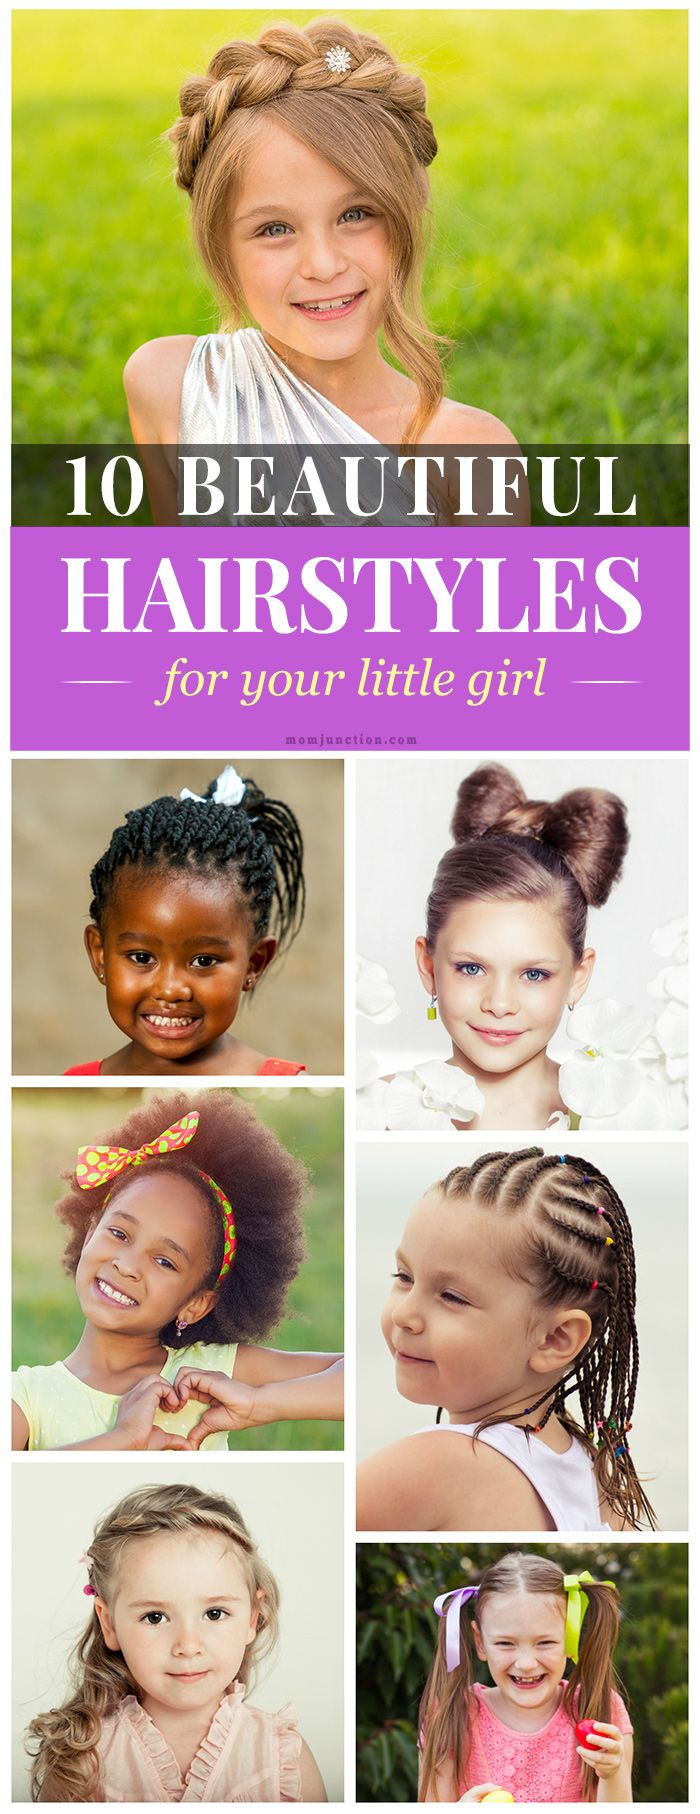 19 Super Easy Hairstyles For Girls | Baby hairstyles, Baby girl hairstyles, Little girl hairstyles